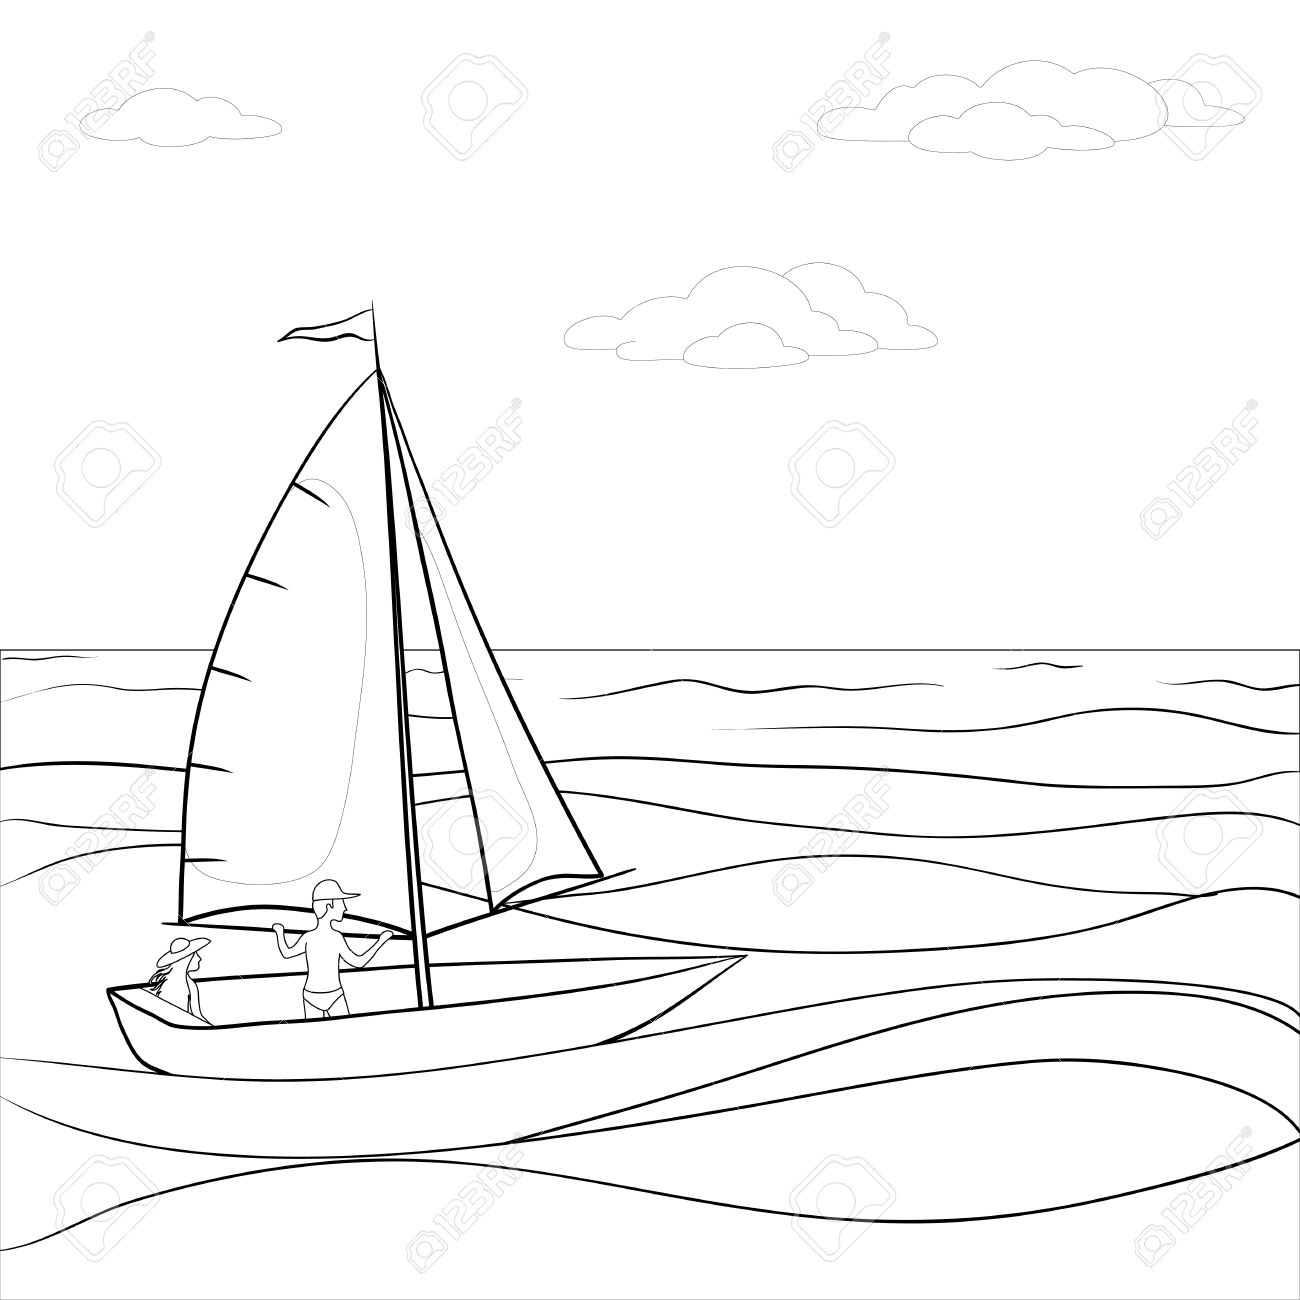 Sailing Boat Drawing At Getdrawings